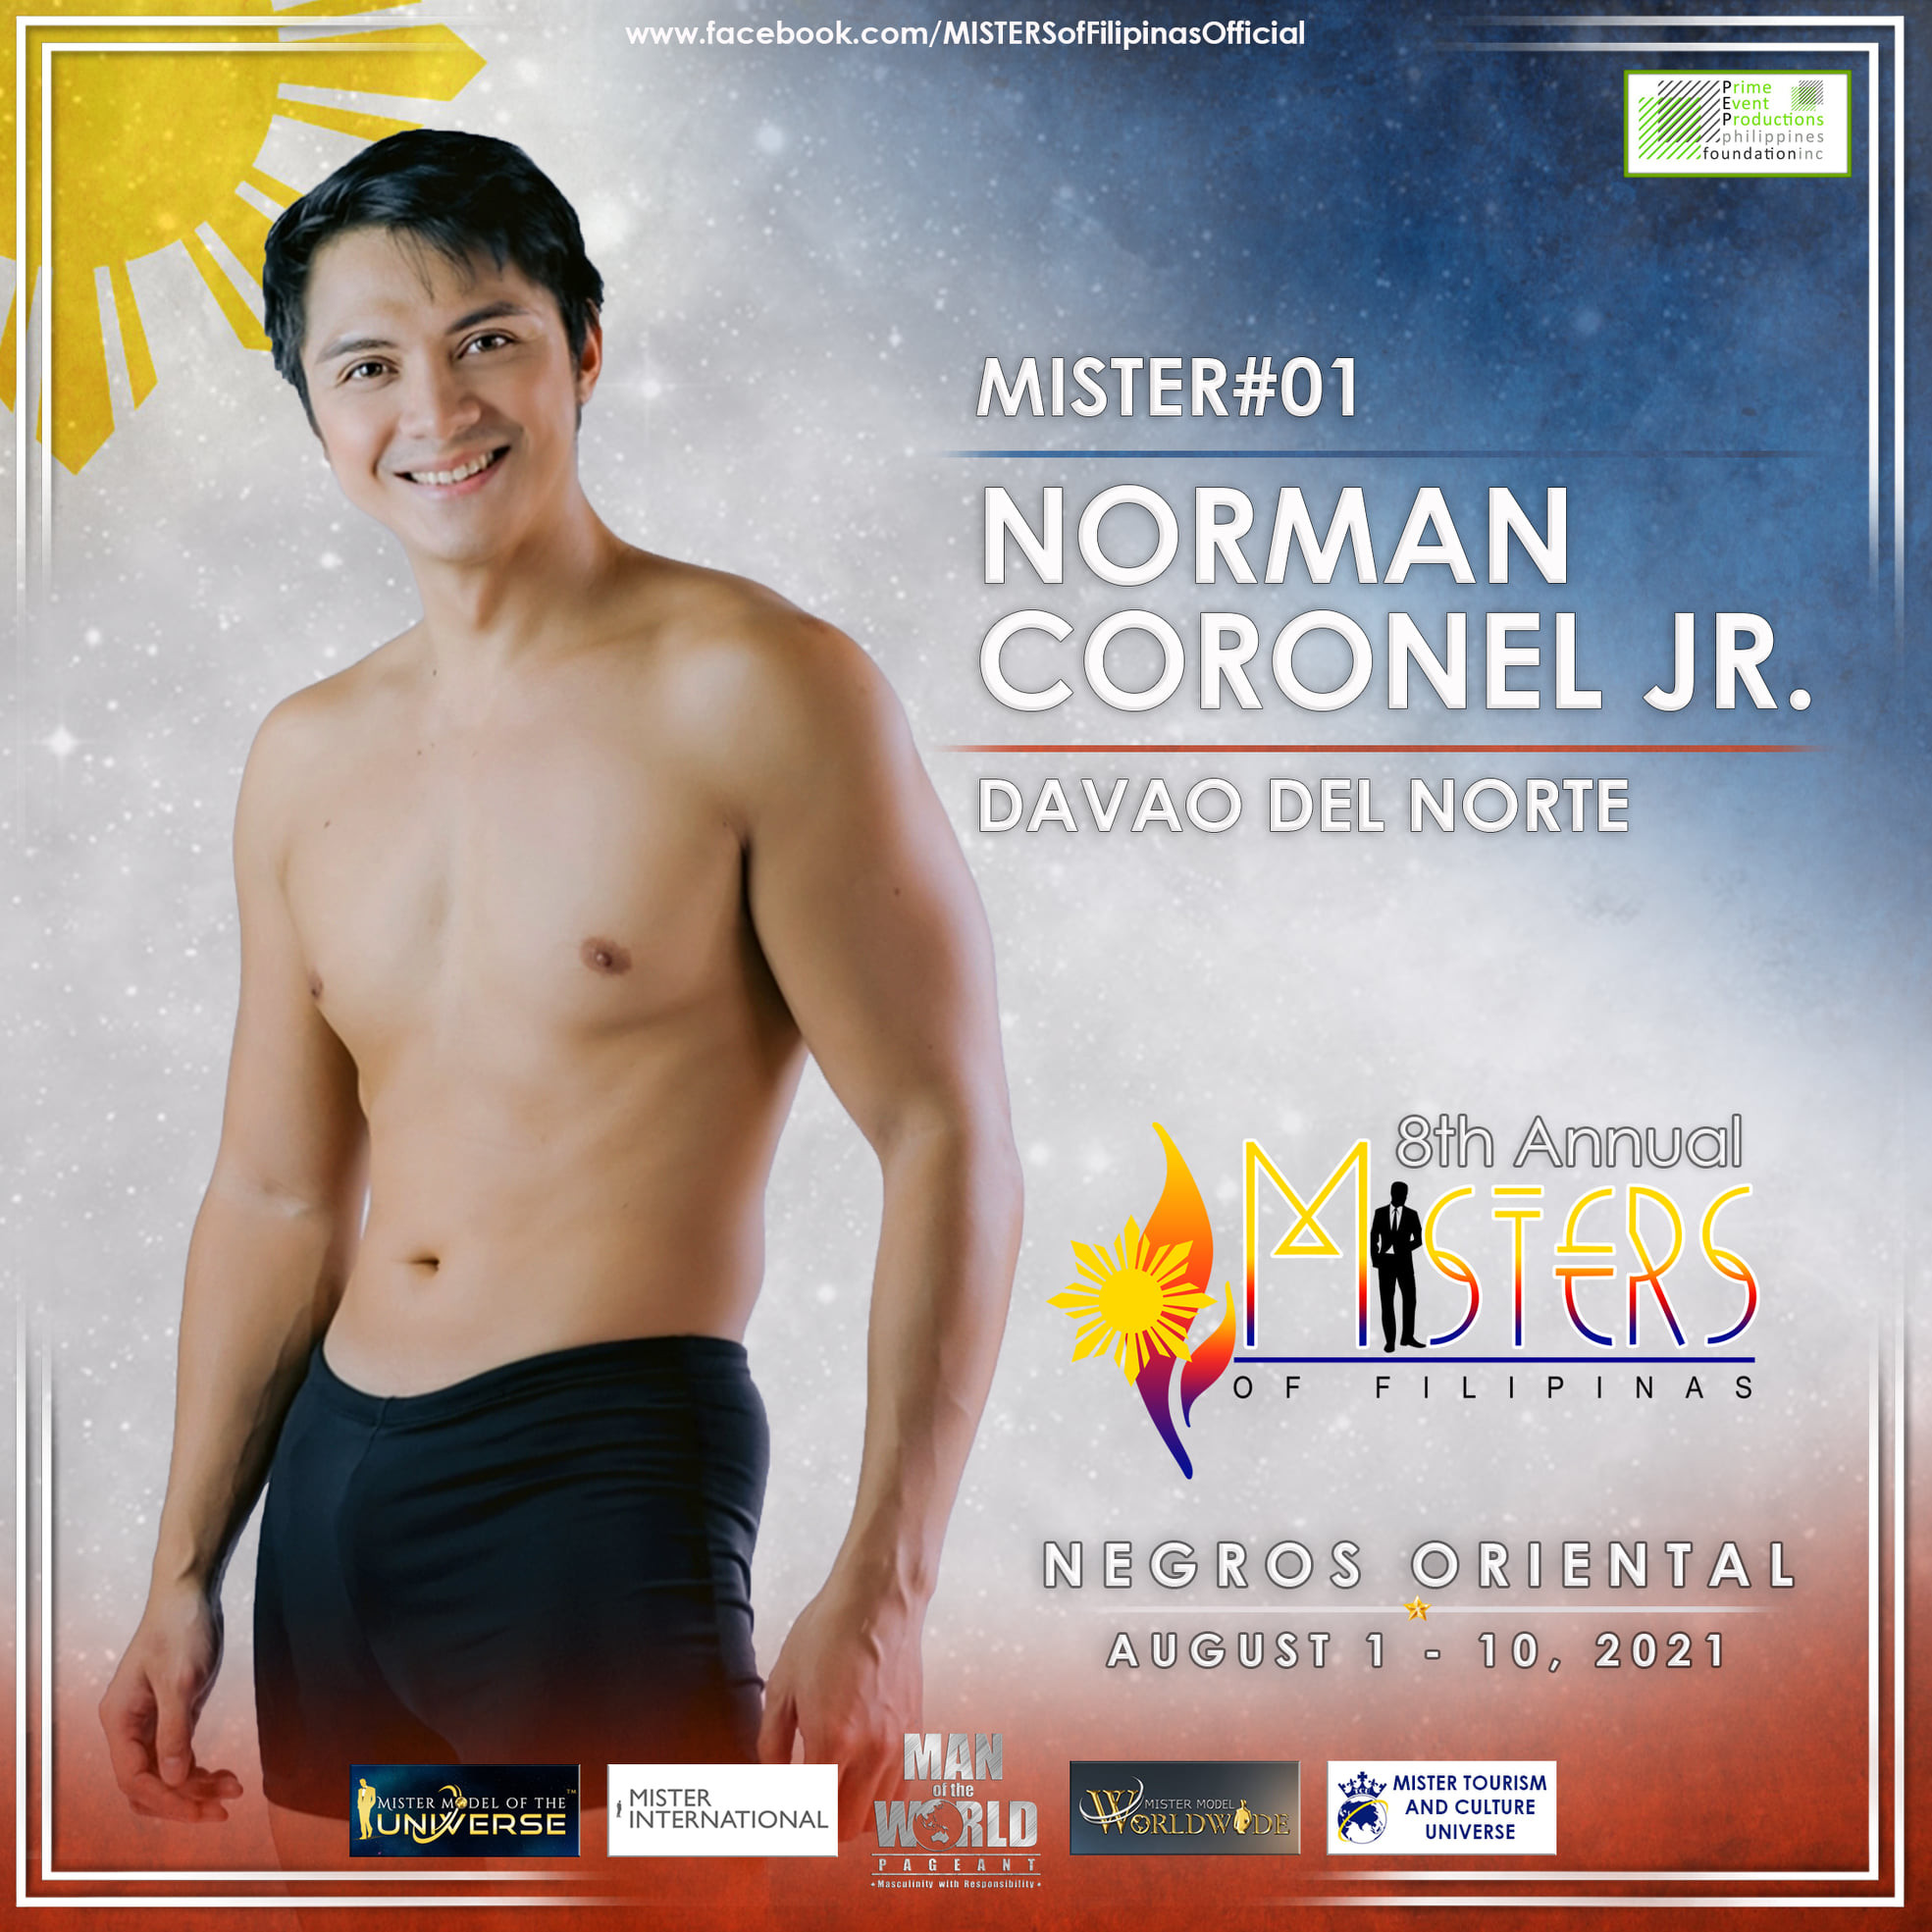 candidatos a misters of filipinas 2021. final: 27 agosto. OwKoKP